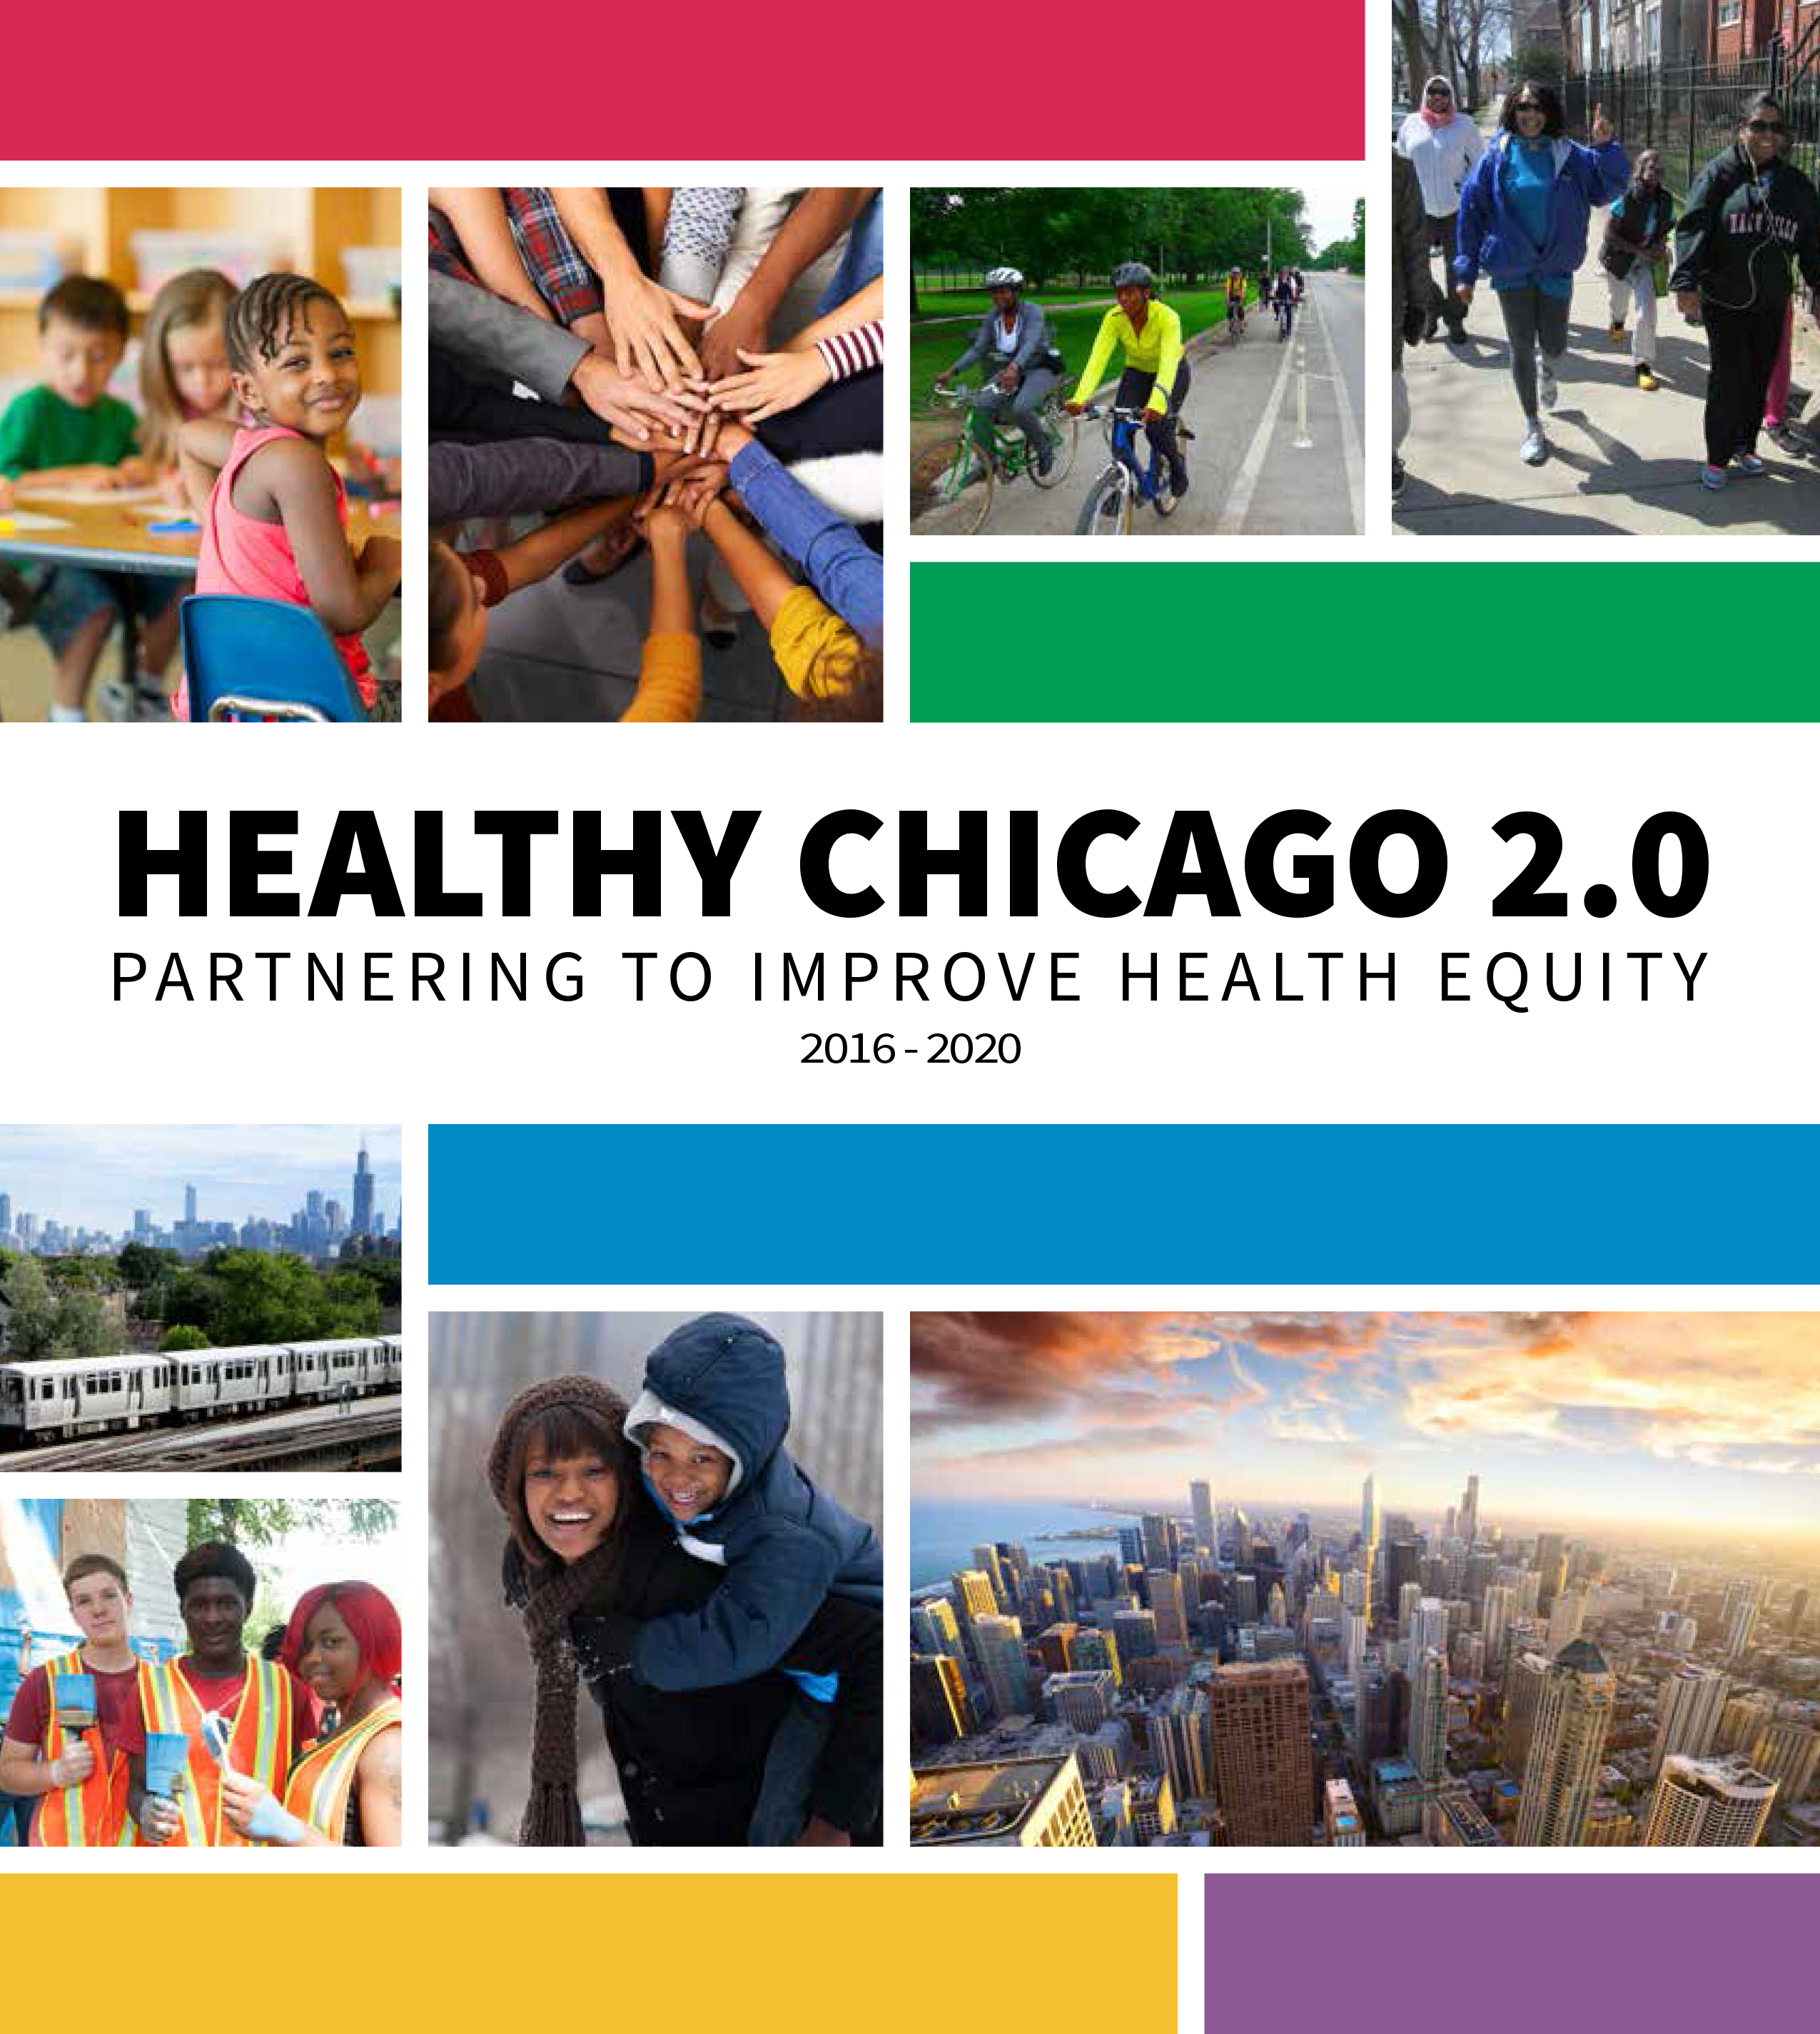 Healthy Chicago 2.0 Plan